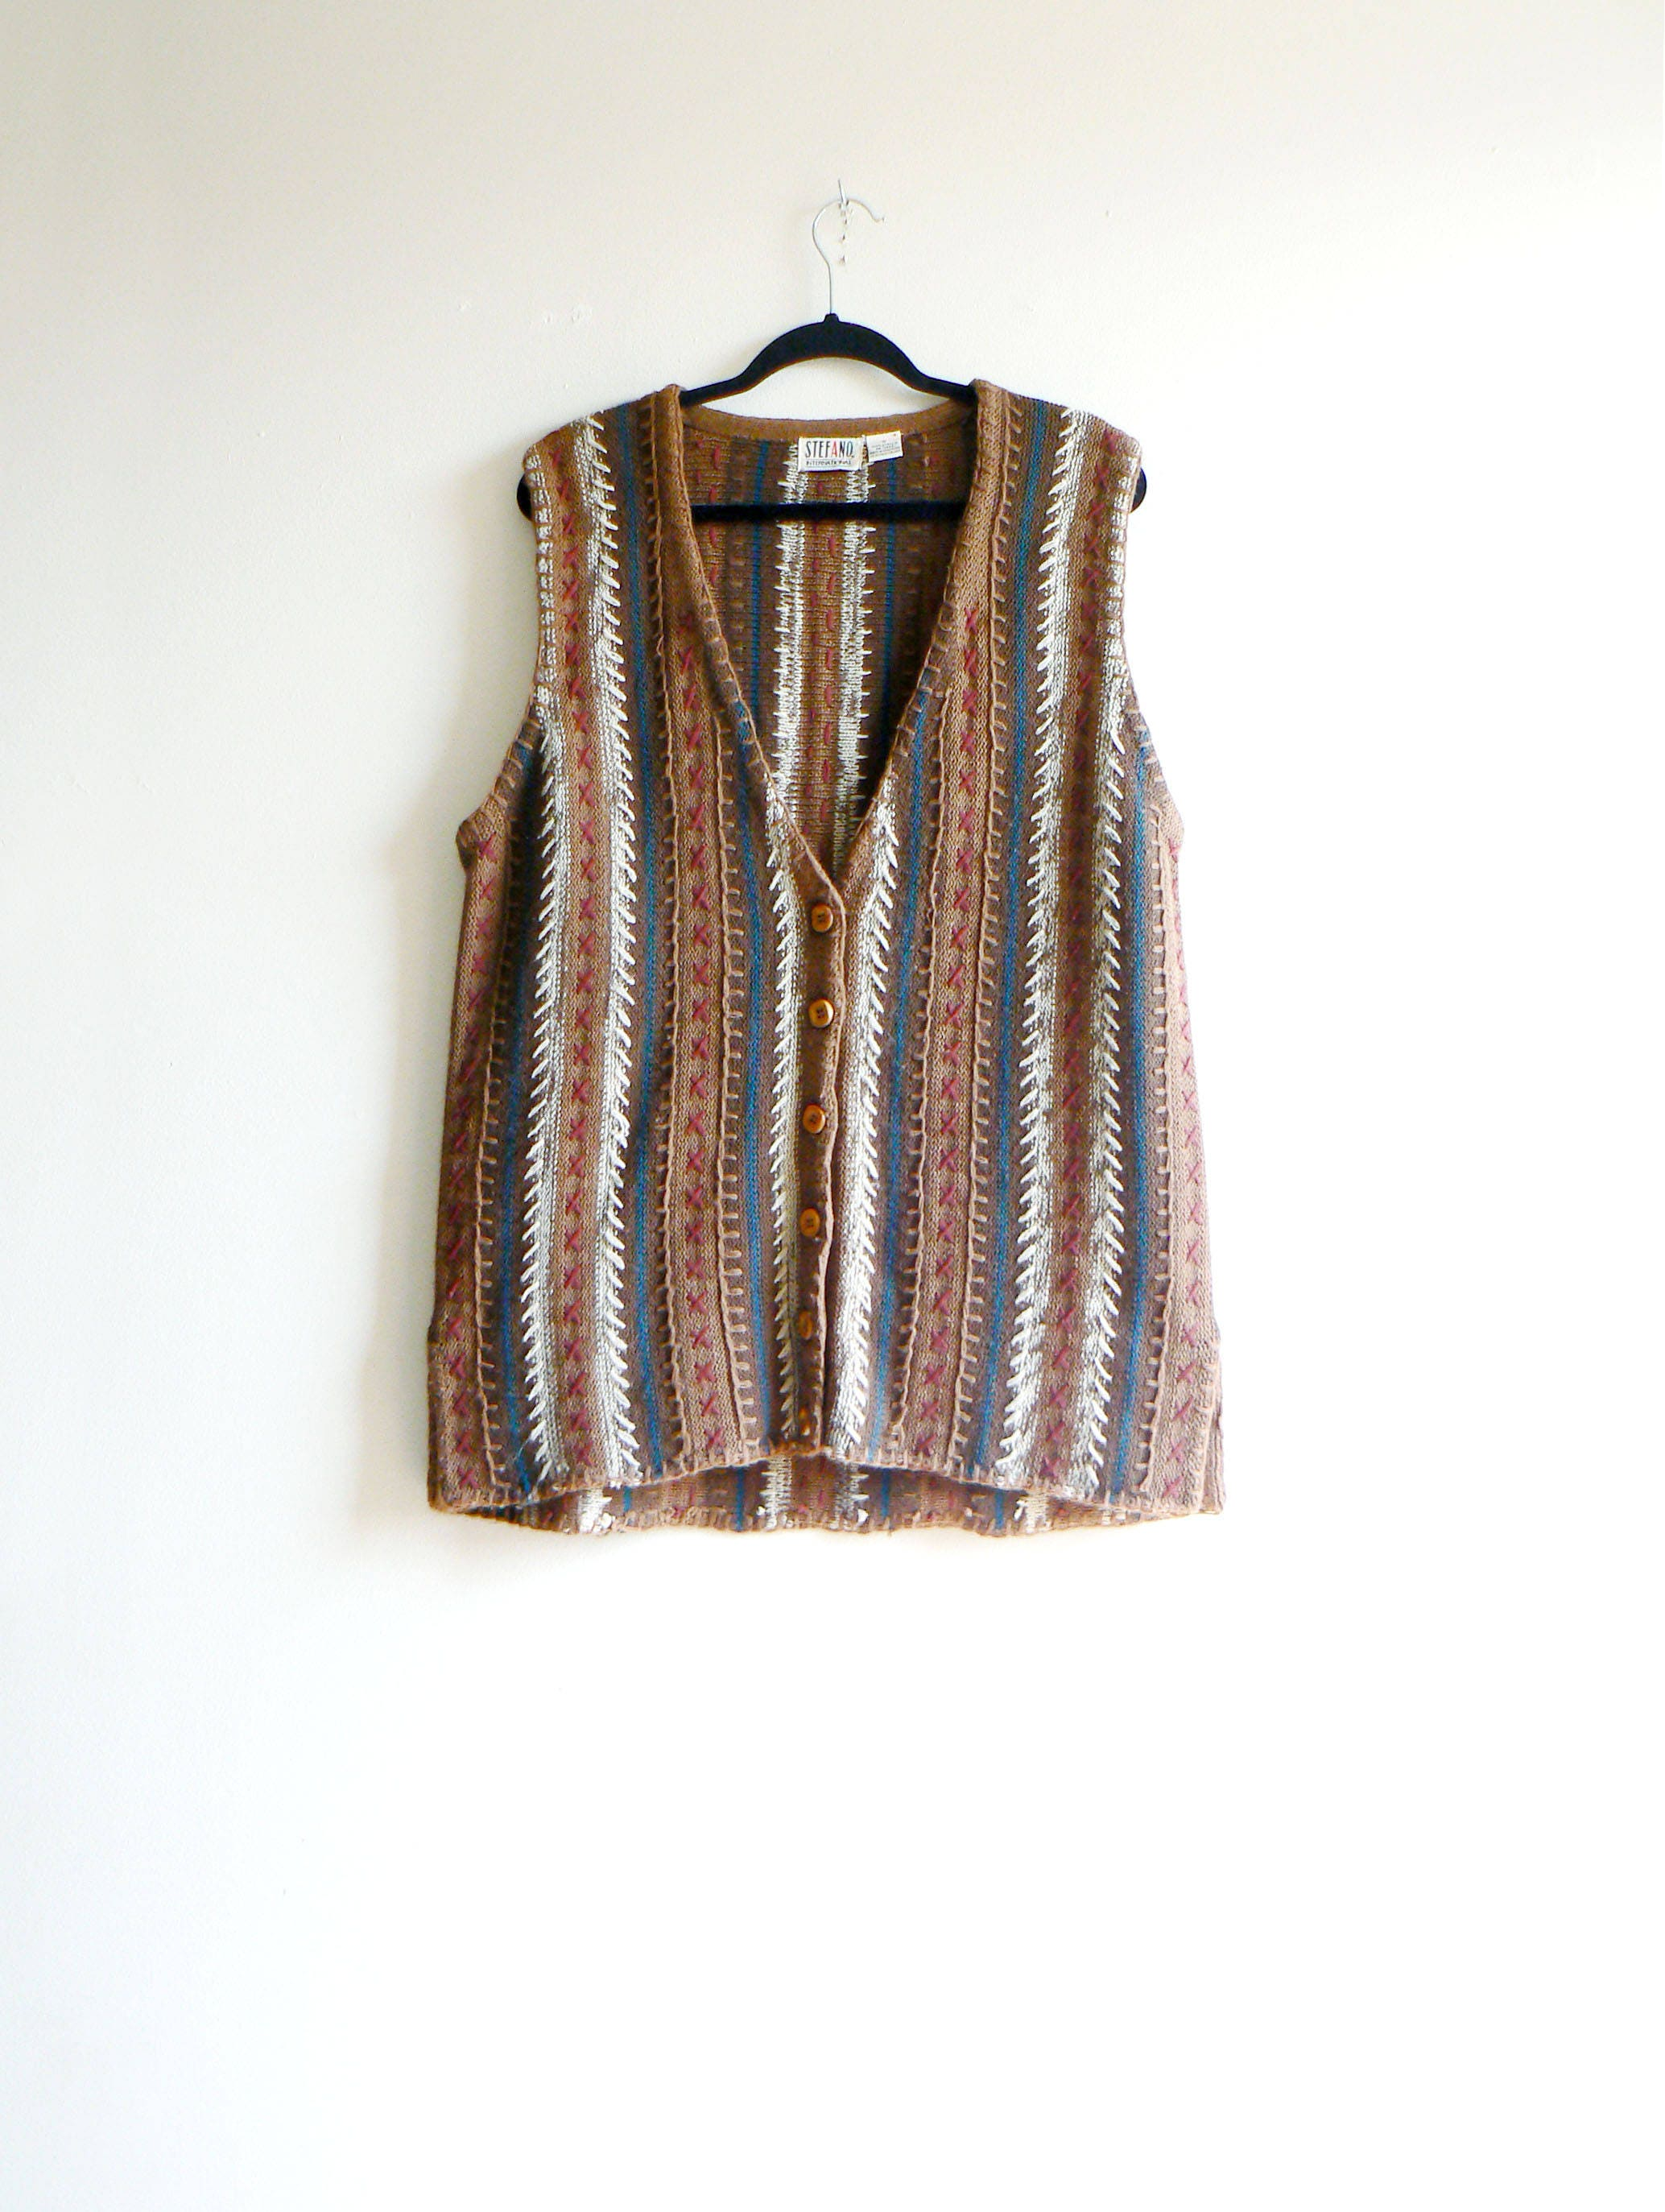 80s Wool Hippie Brown Vest with real pockets UNISEX 0GpTff9jXv